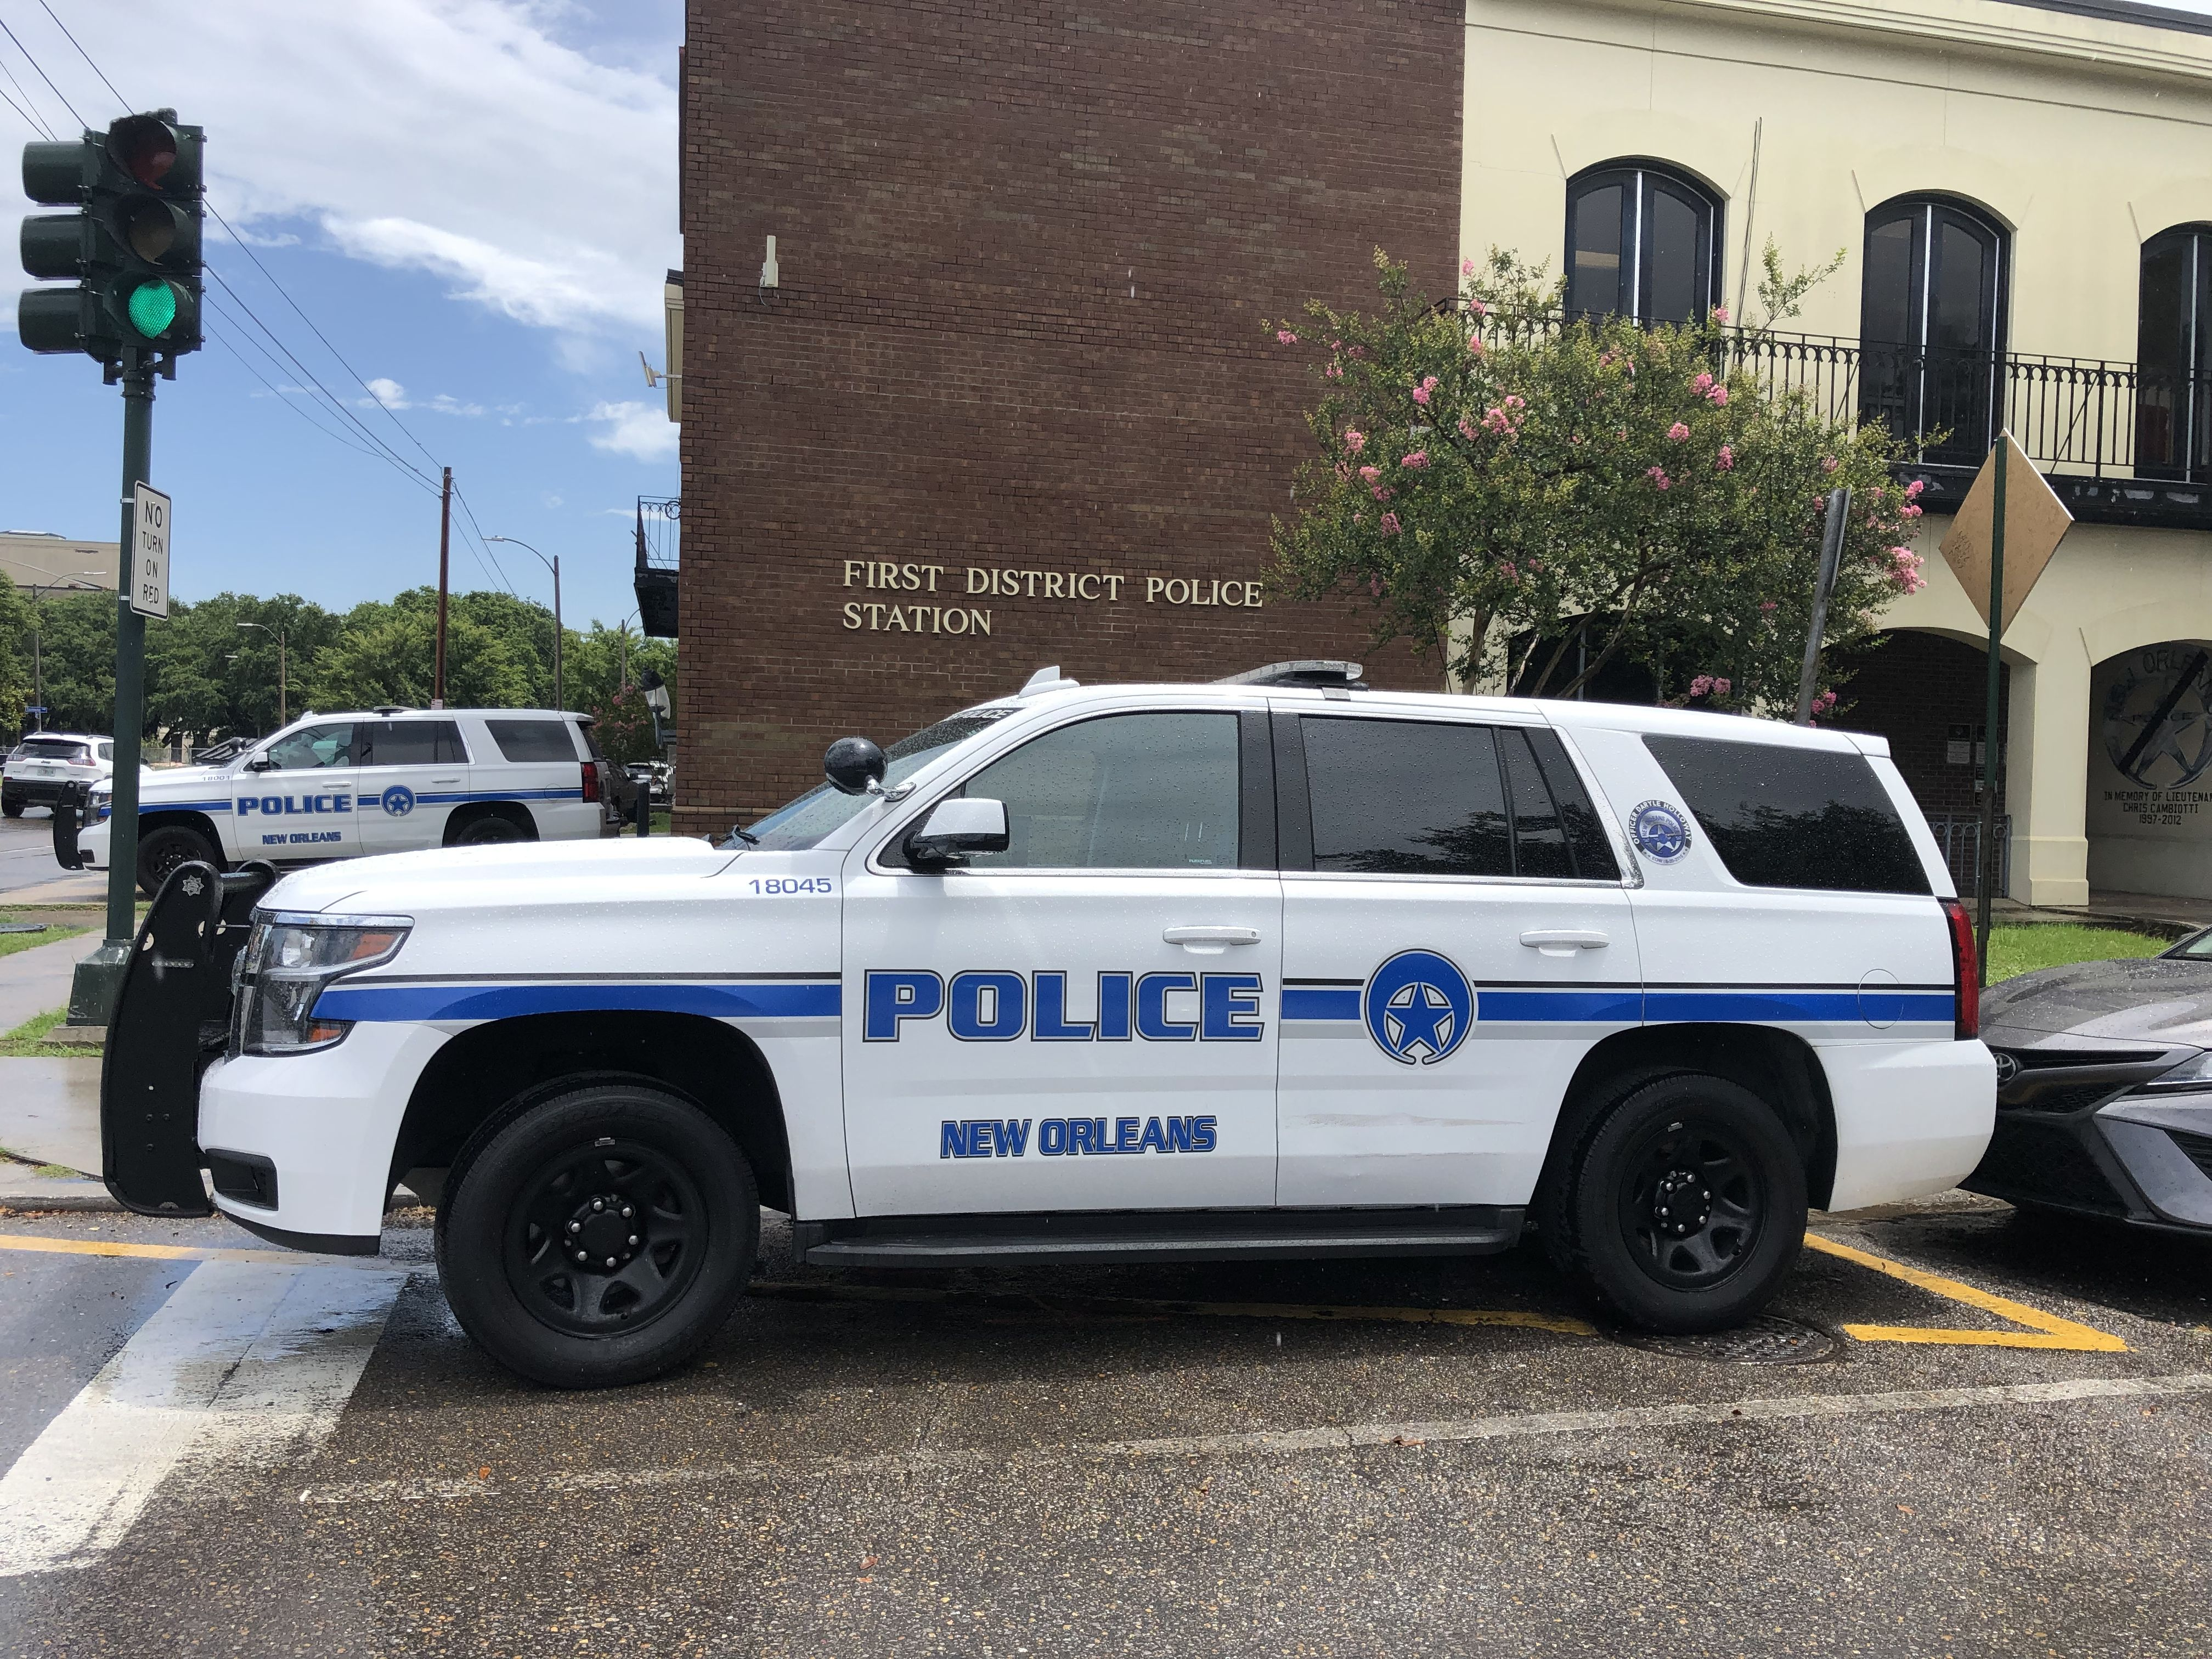 900 Police Vehicles Ideas In 2021 Police Police Cars Emergency Vehicles